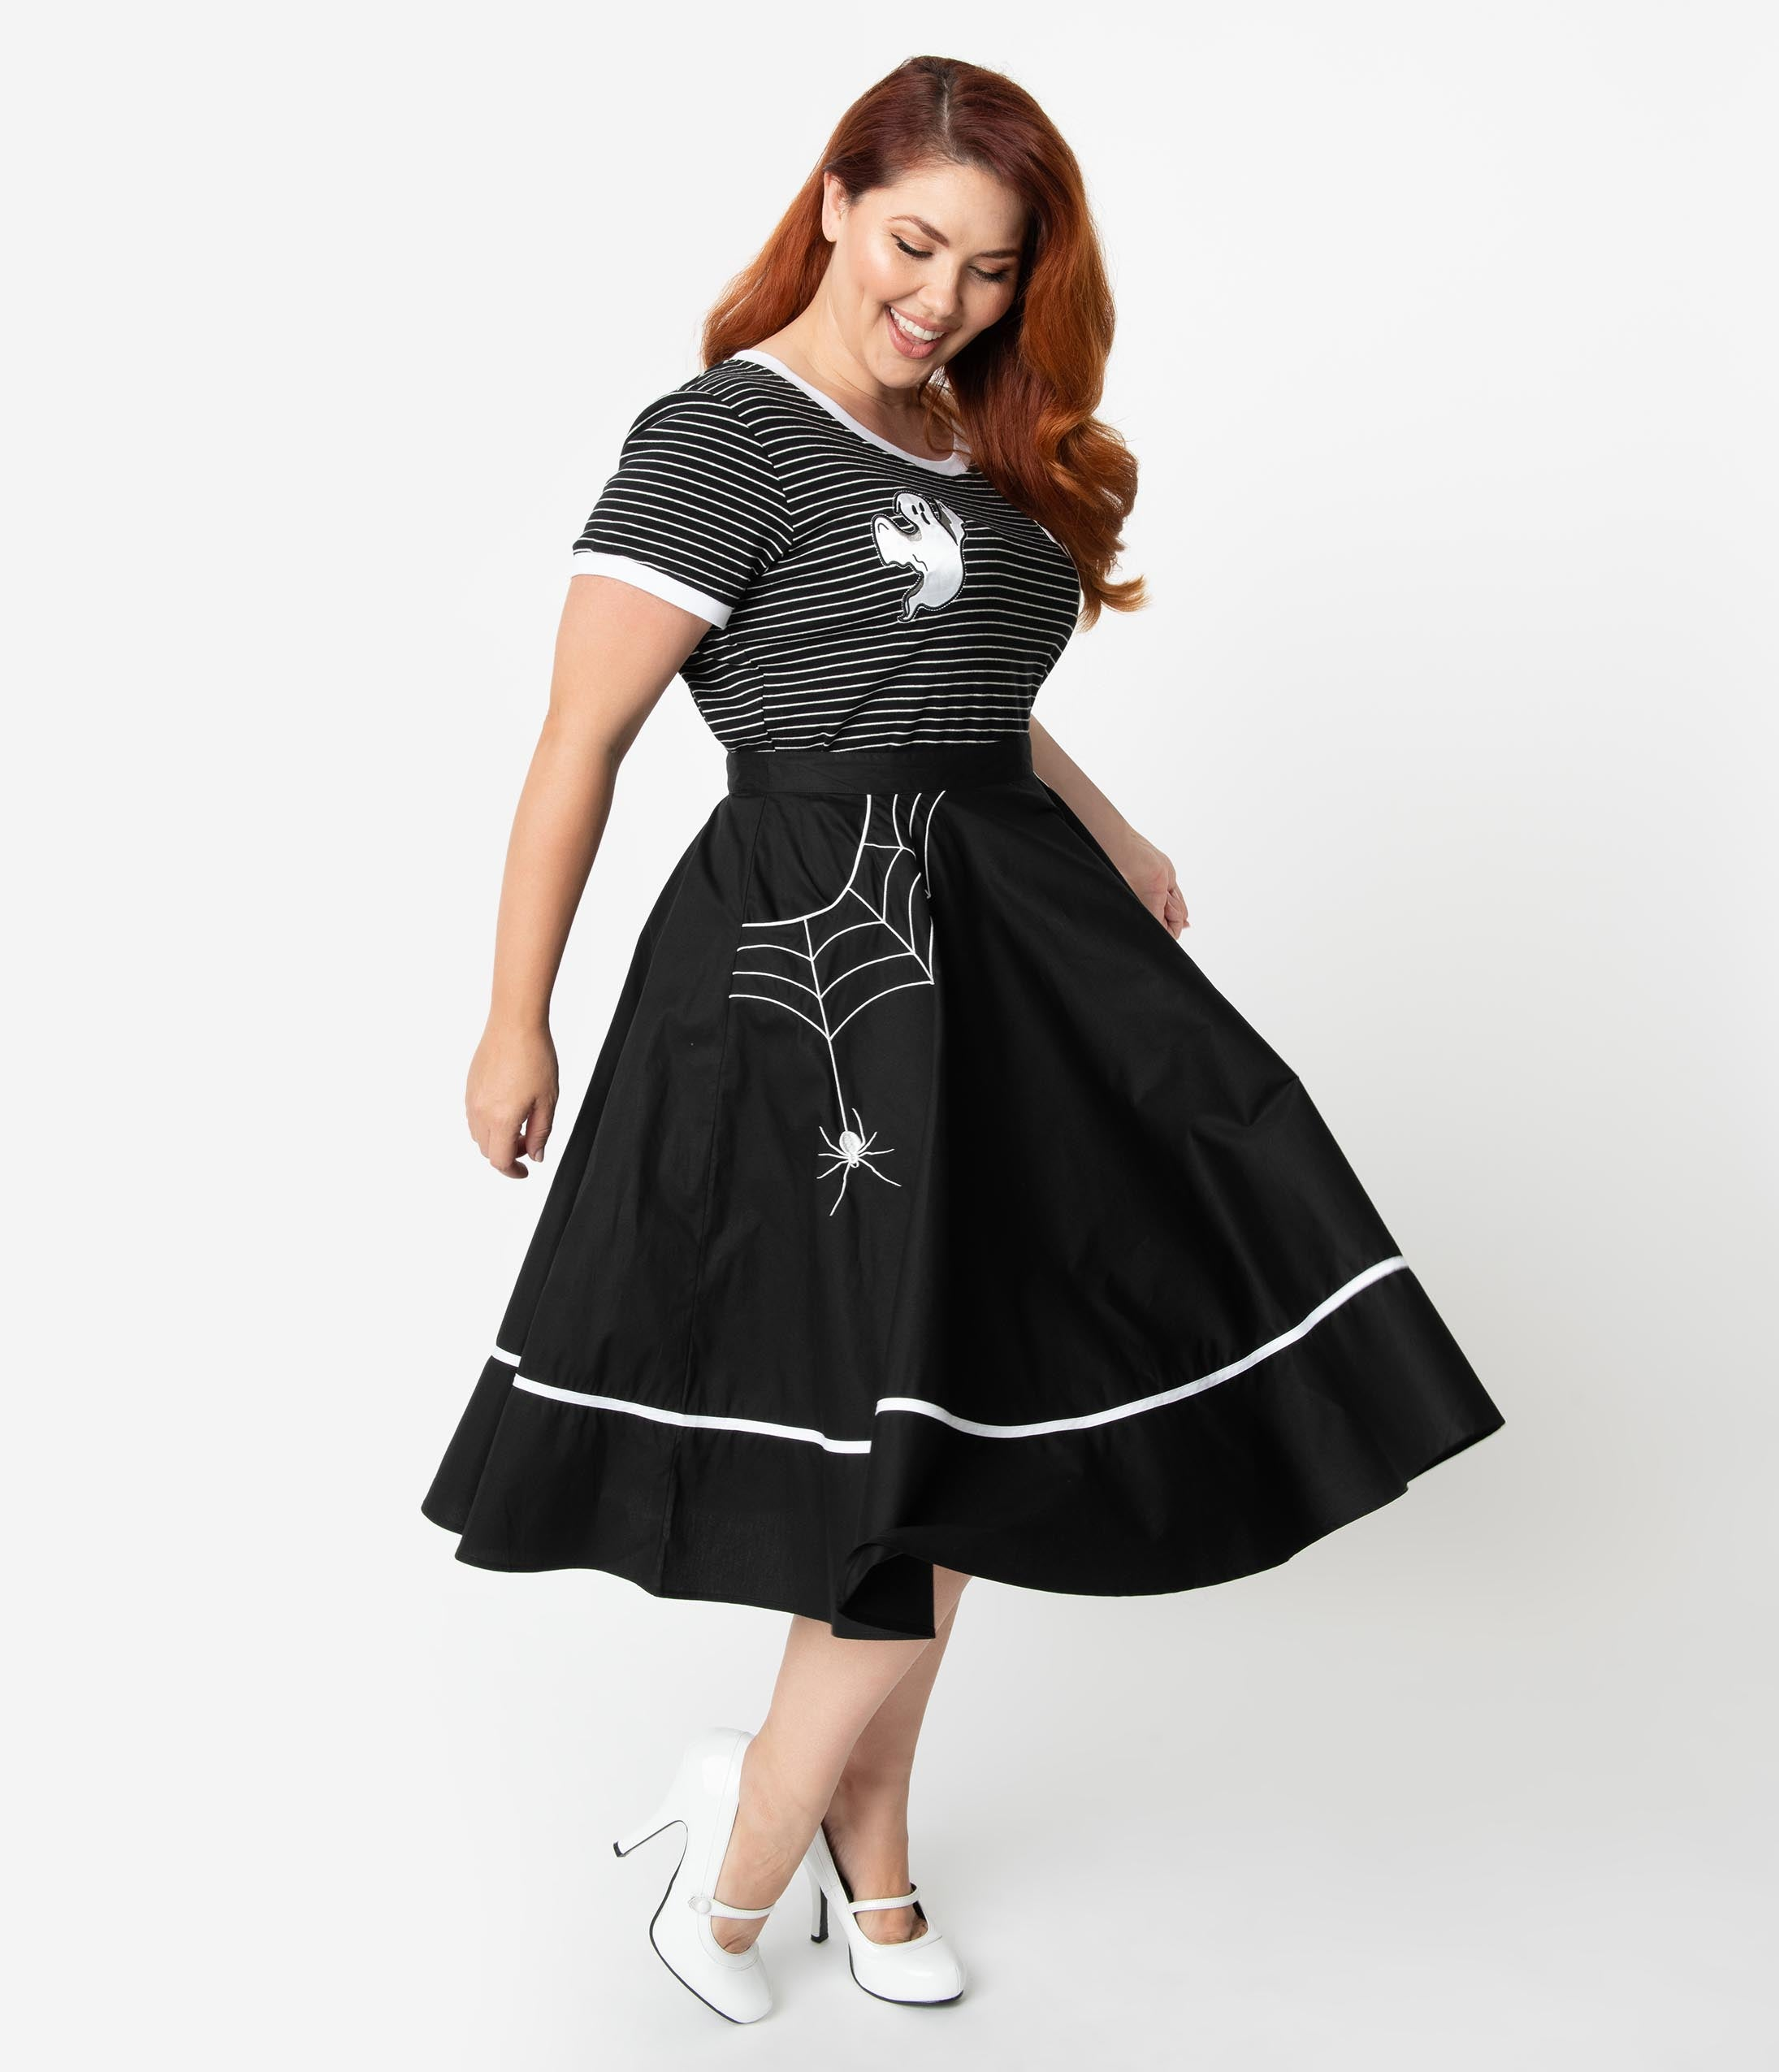 Retro Skirts: Vintage, Pencil, Circle, & Plus Sizes Hell Bunny Plus Size Black Cotton Miss Muffet High Waist Swing Skirt $58.00 AT vintagedancer.com